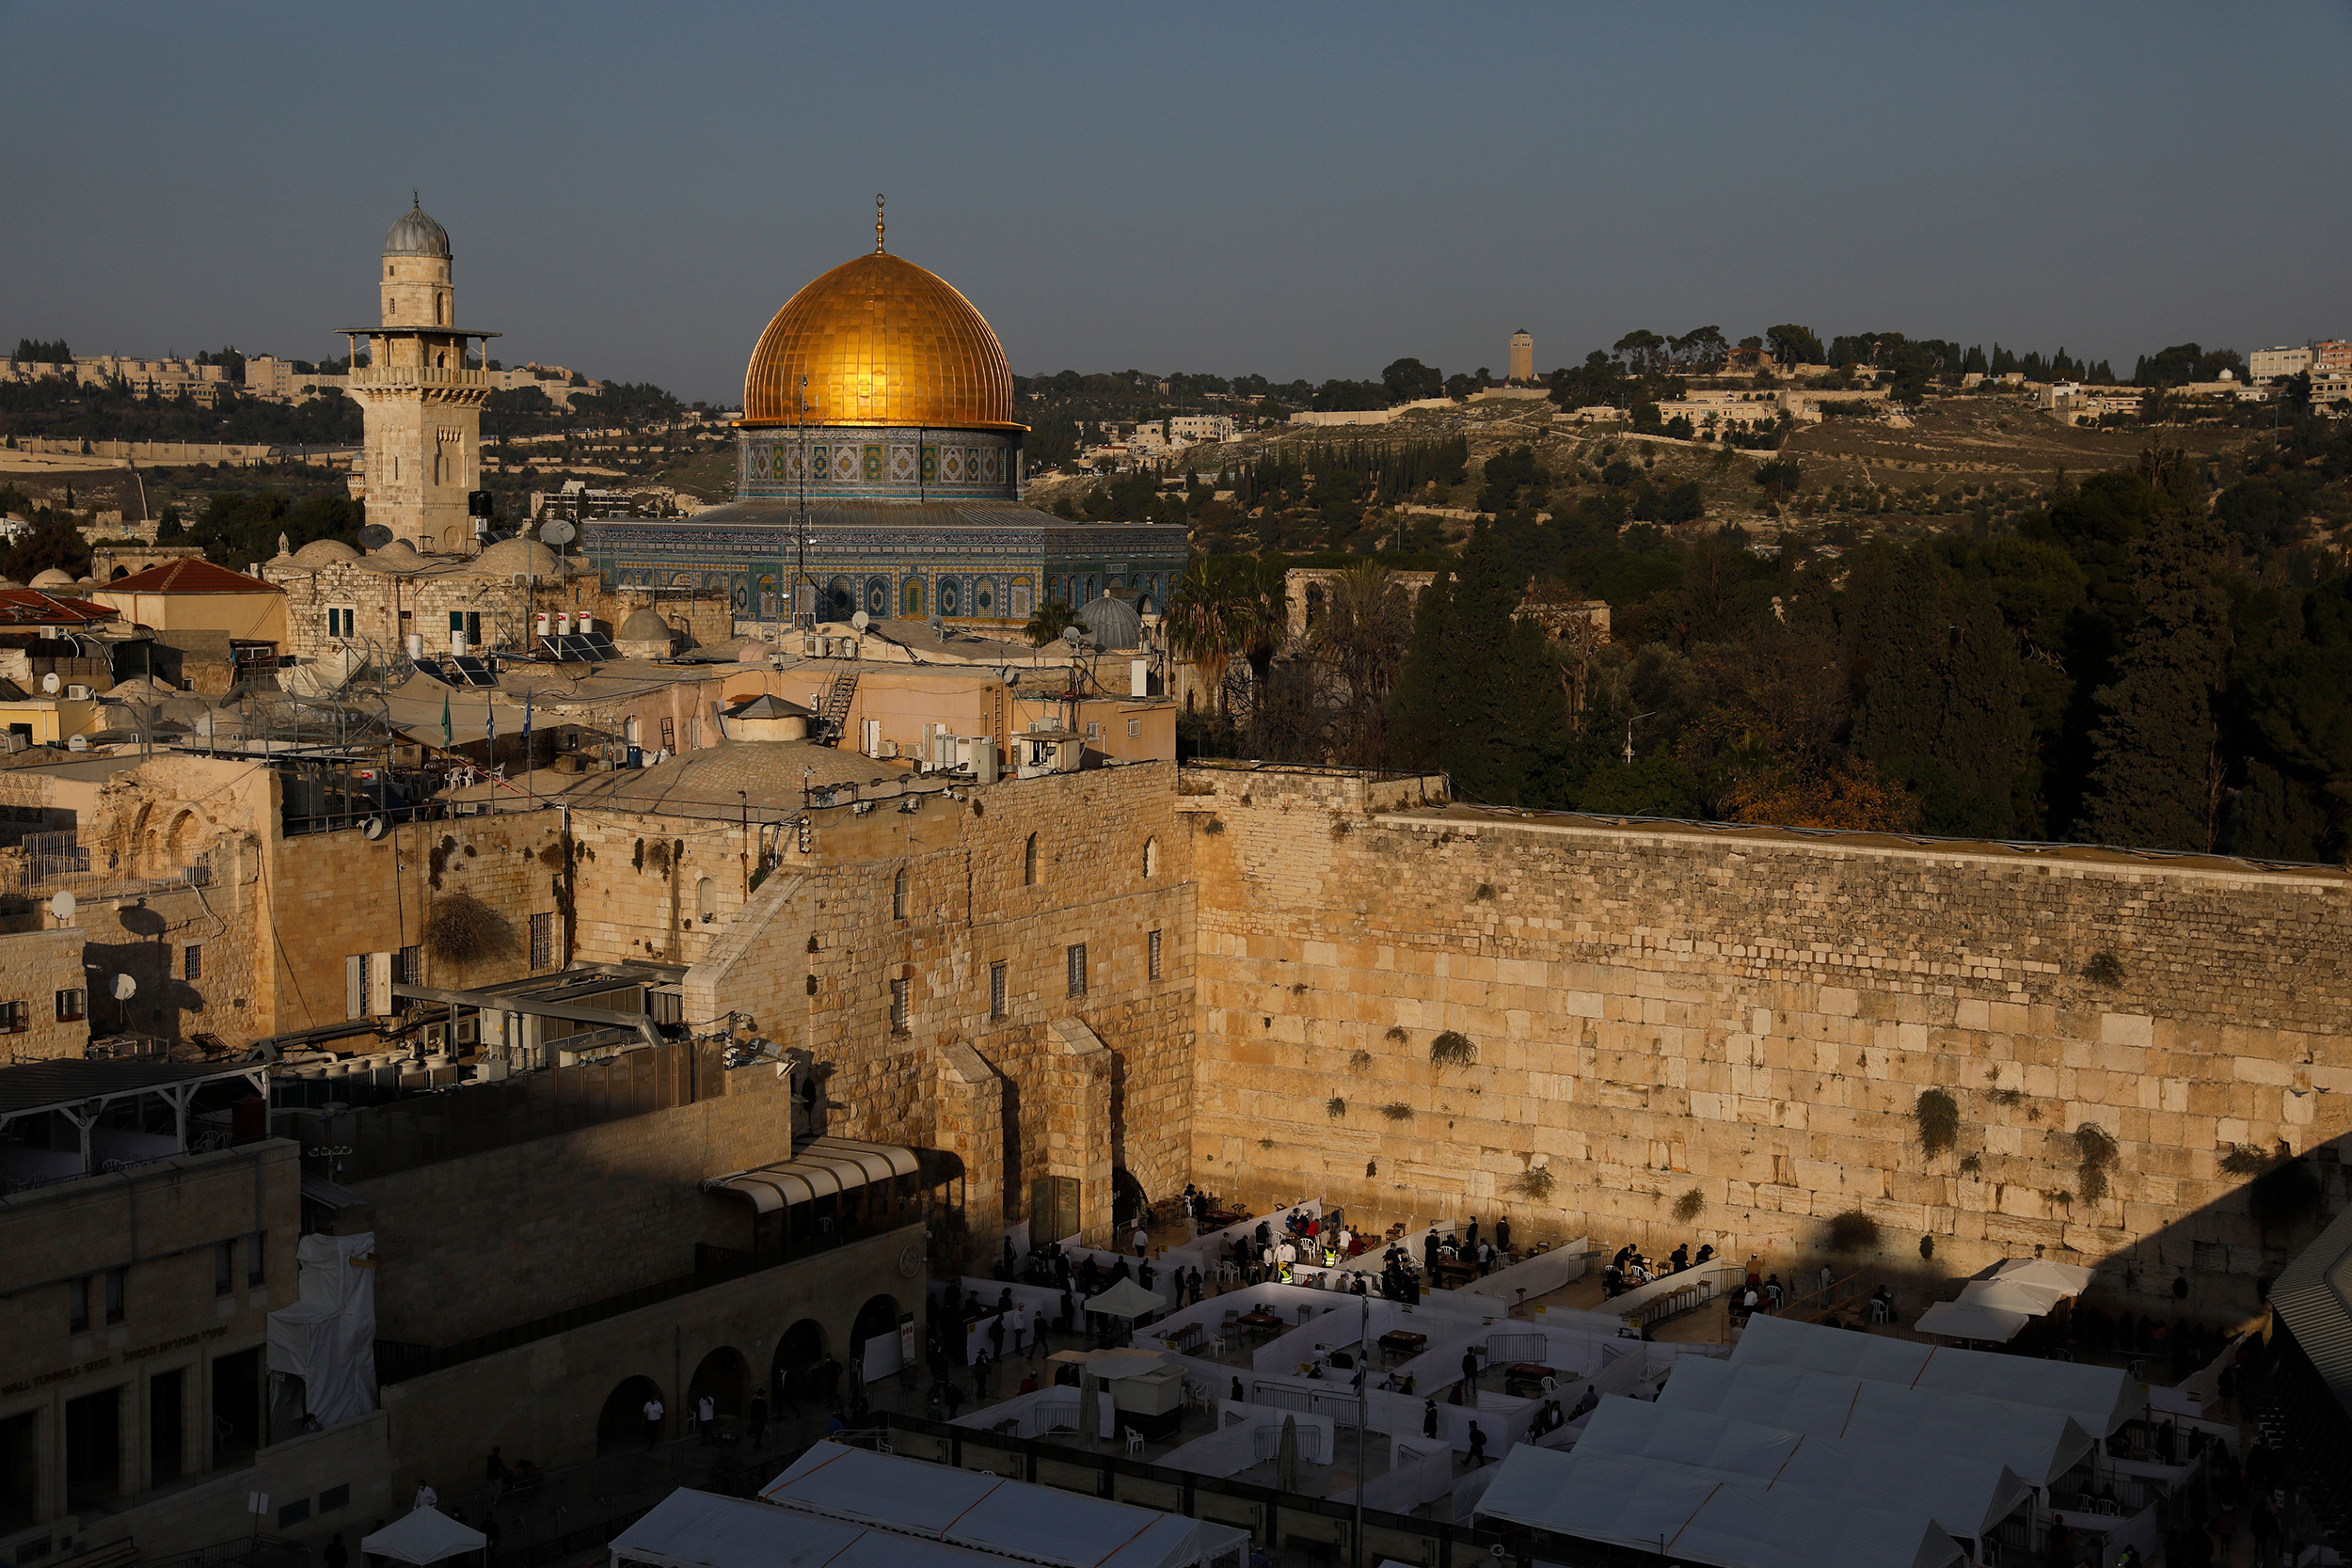 There's a good reason Jews shouldn't be able to pray at their holiest site on Yom Kippur